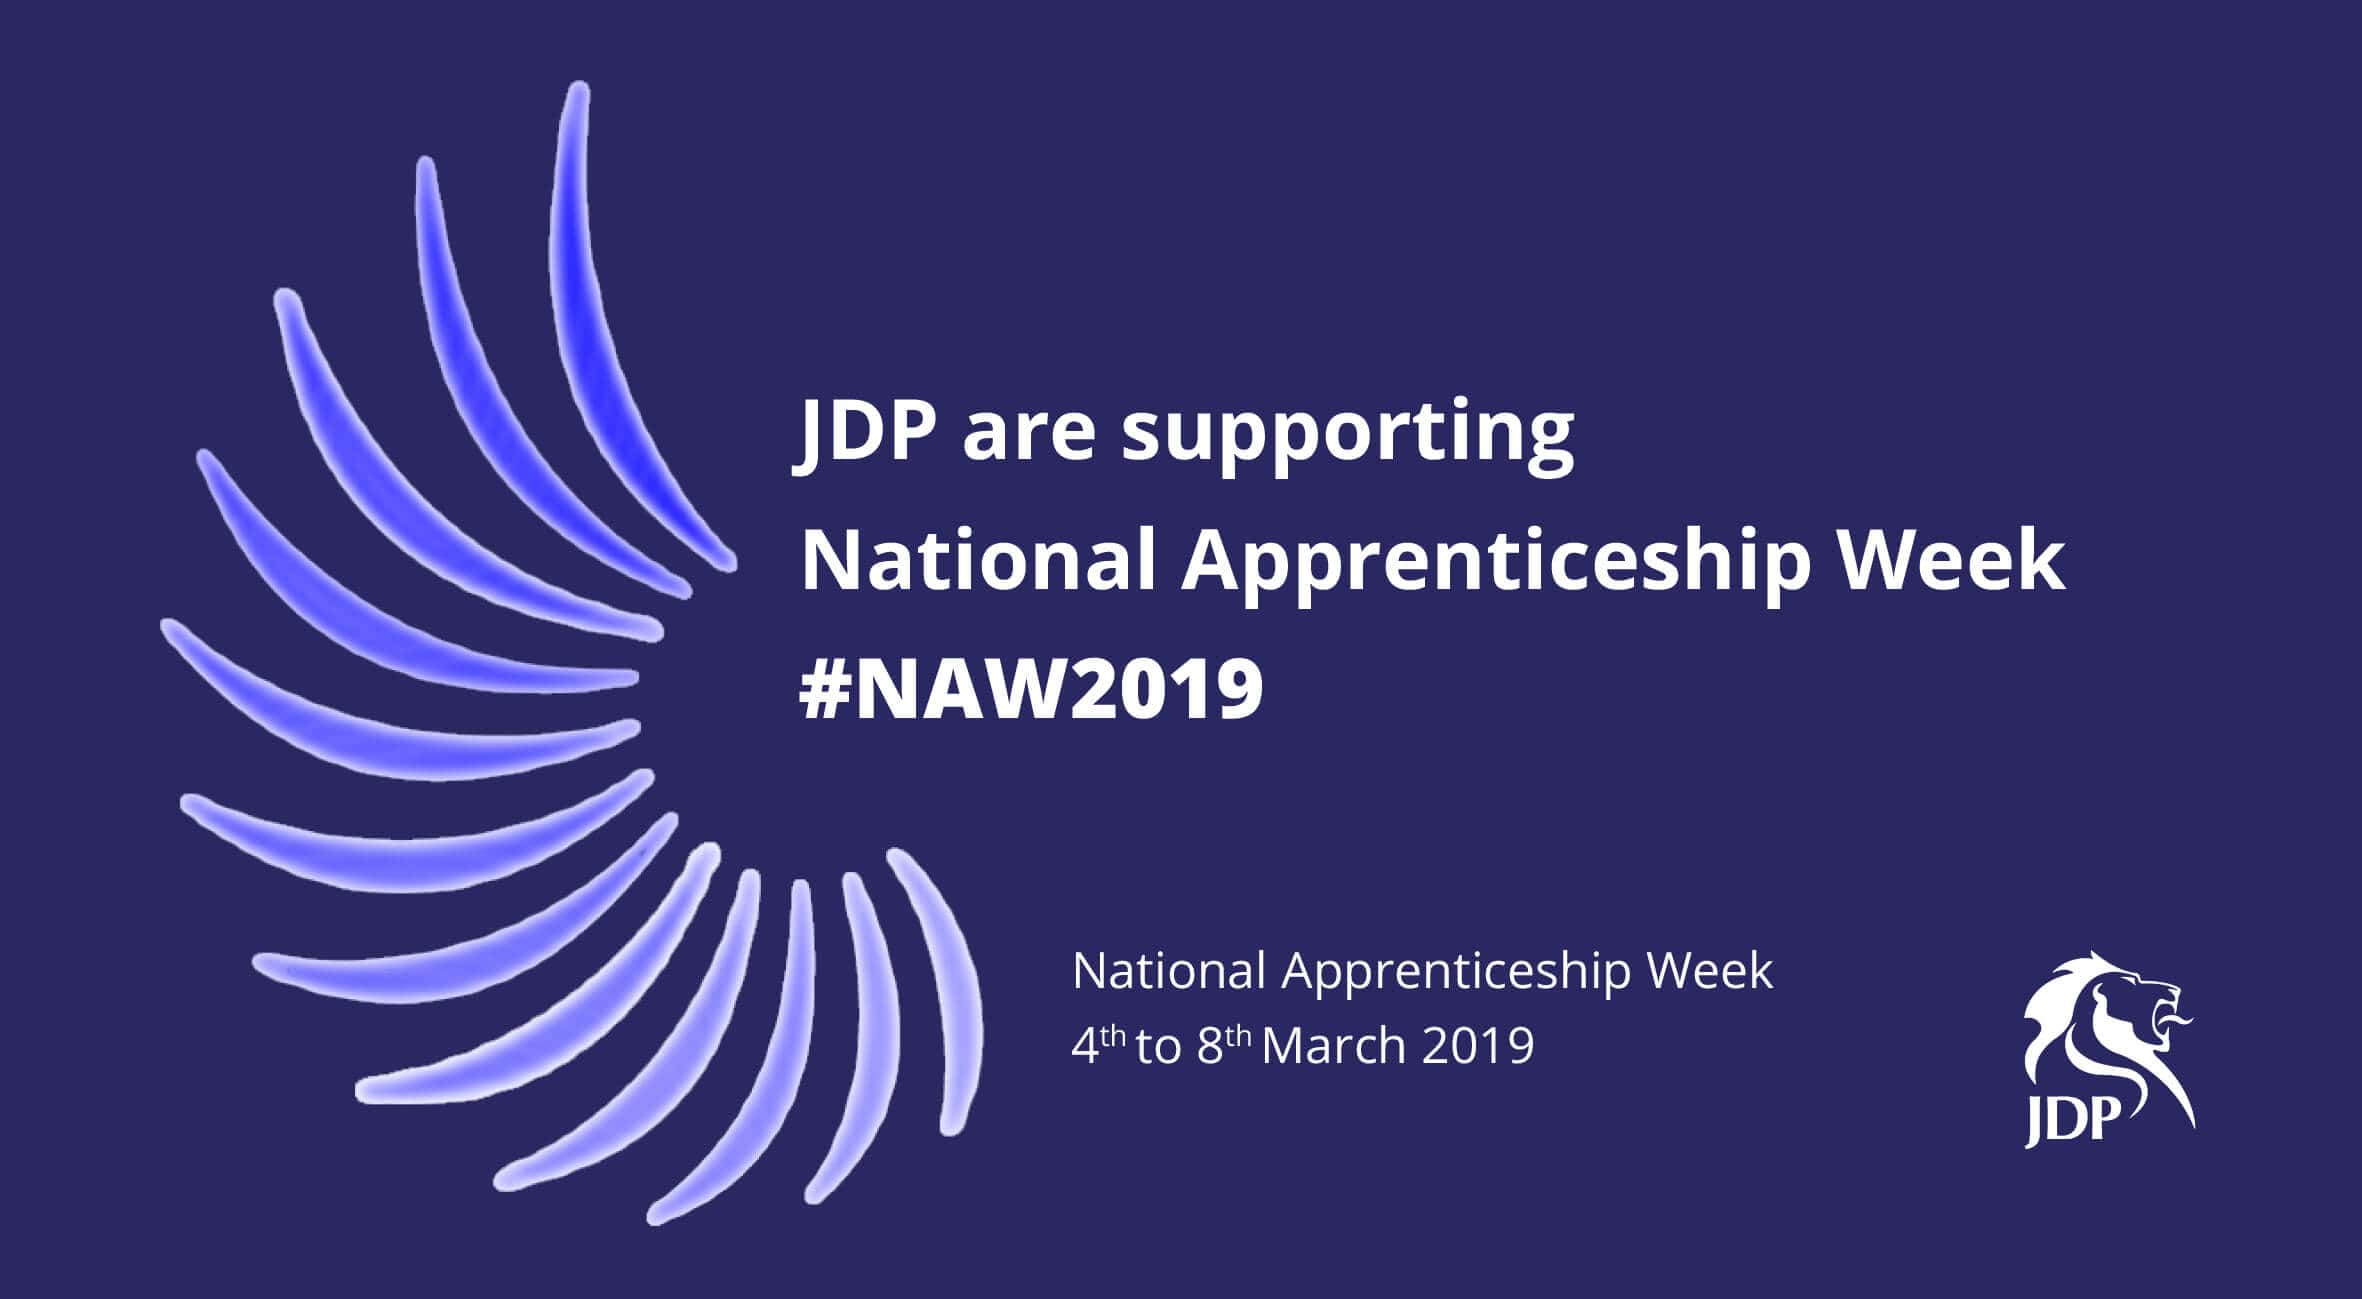 JDP supporting National Apprenticeship week